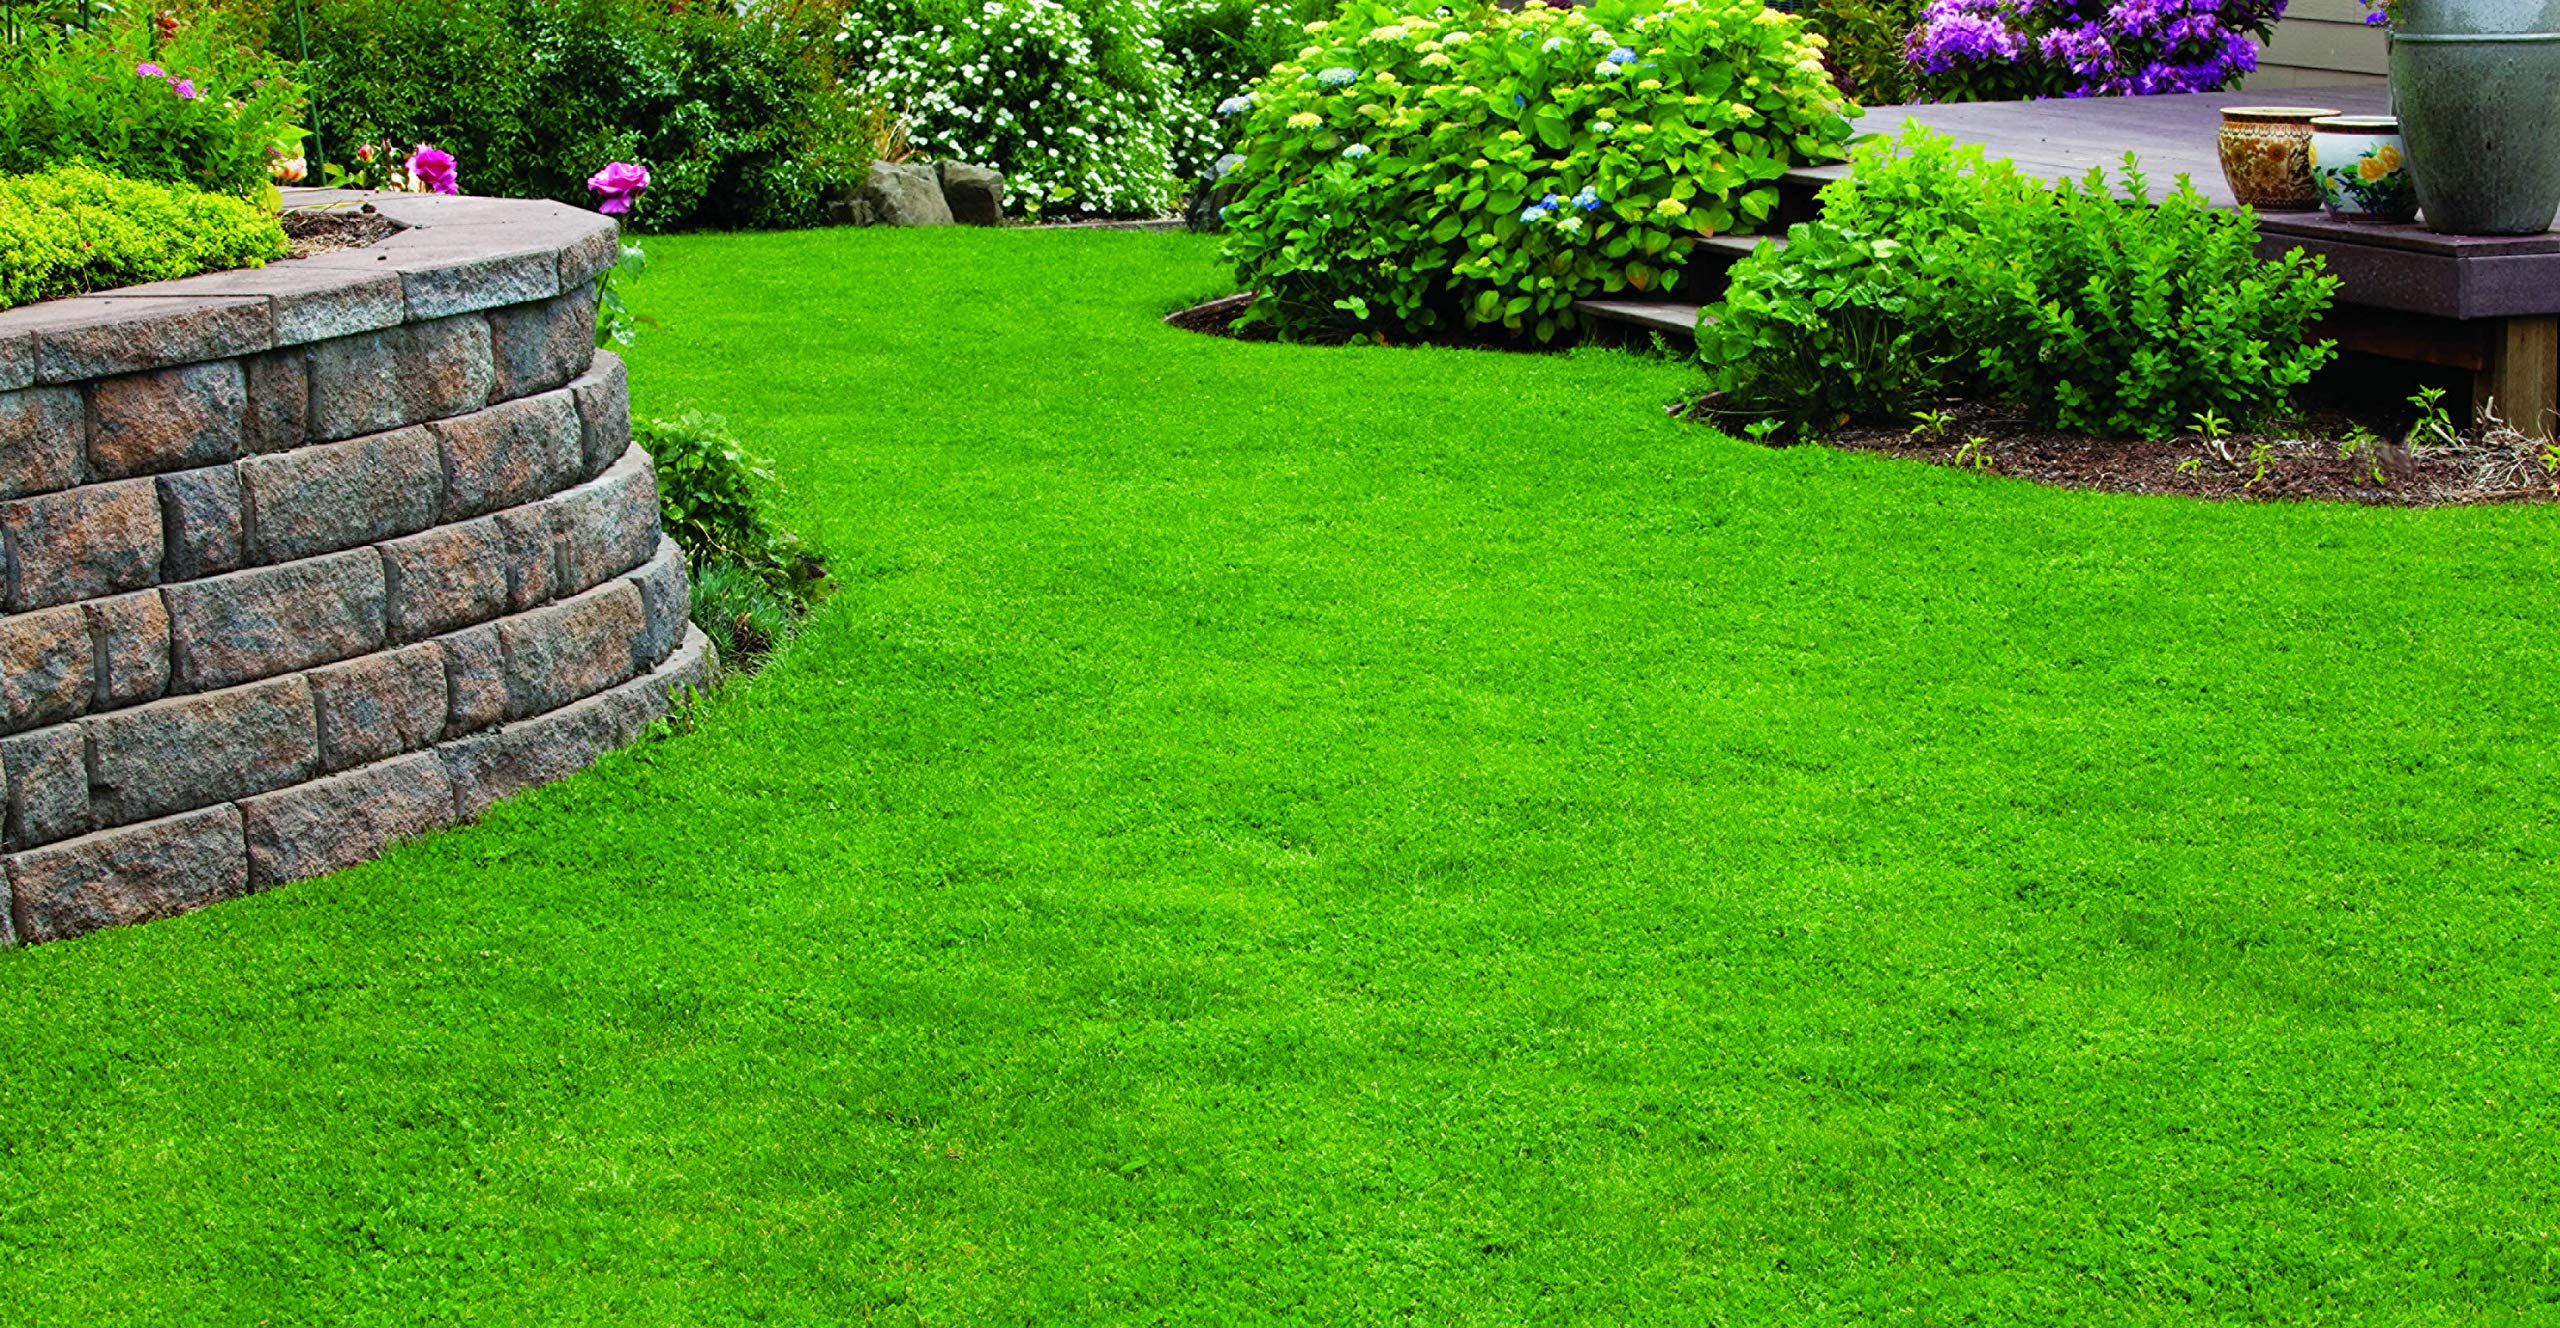 X-Seed 440AS0135UCT-5 MicroLawn Grass & Micro-Clover Mixture, 5, White by X-Seed (Image #6)